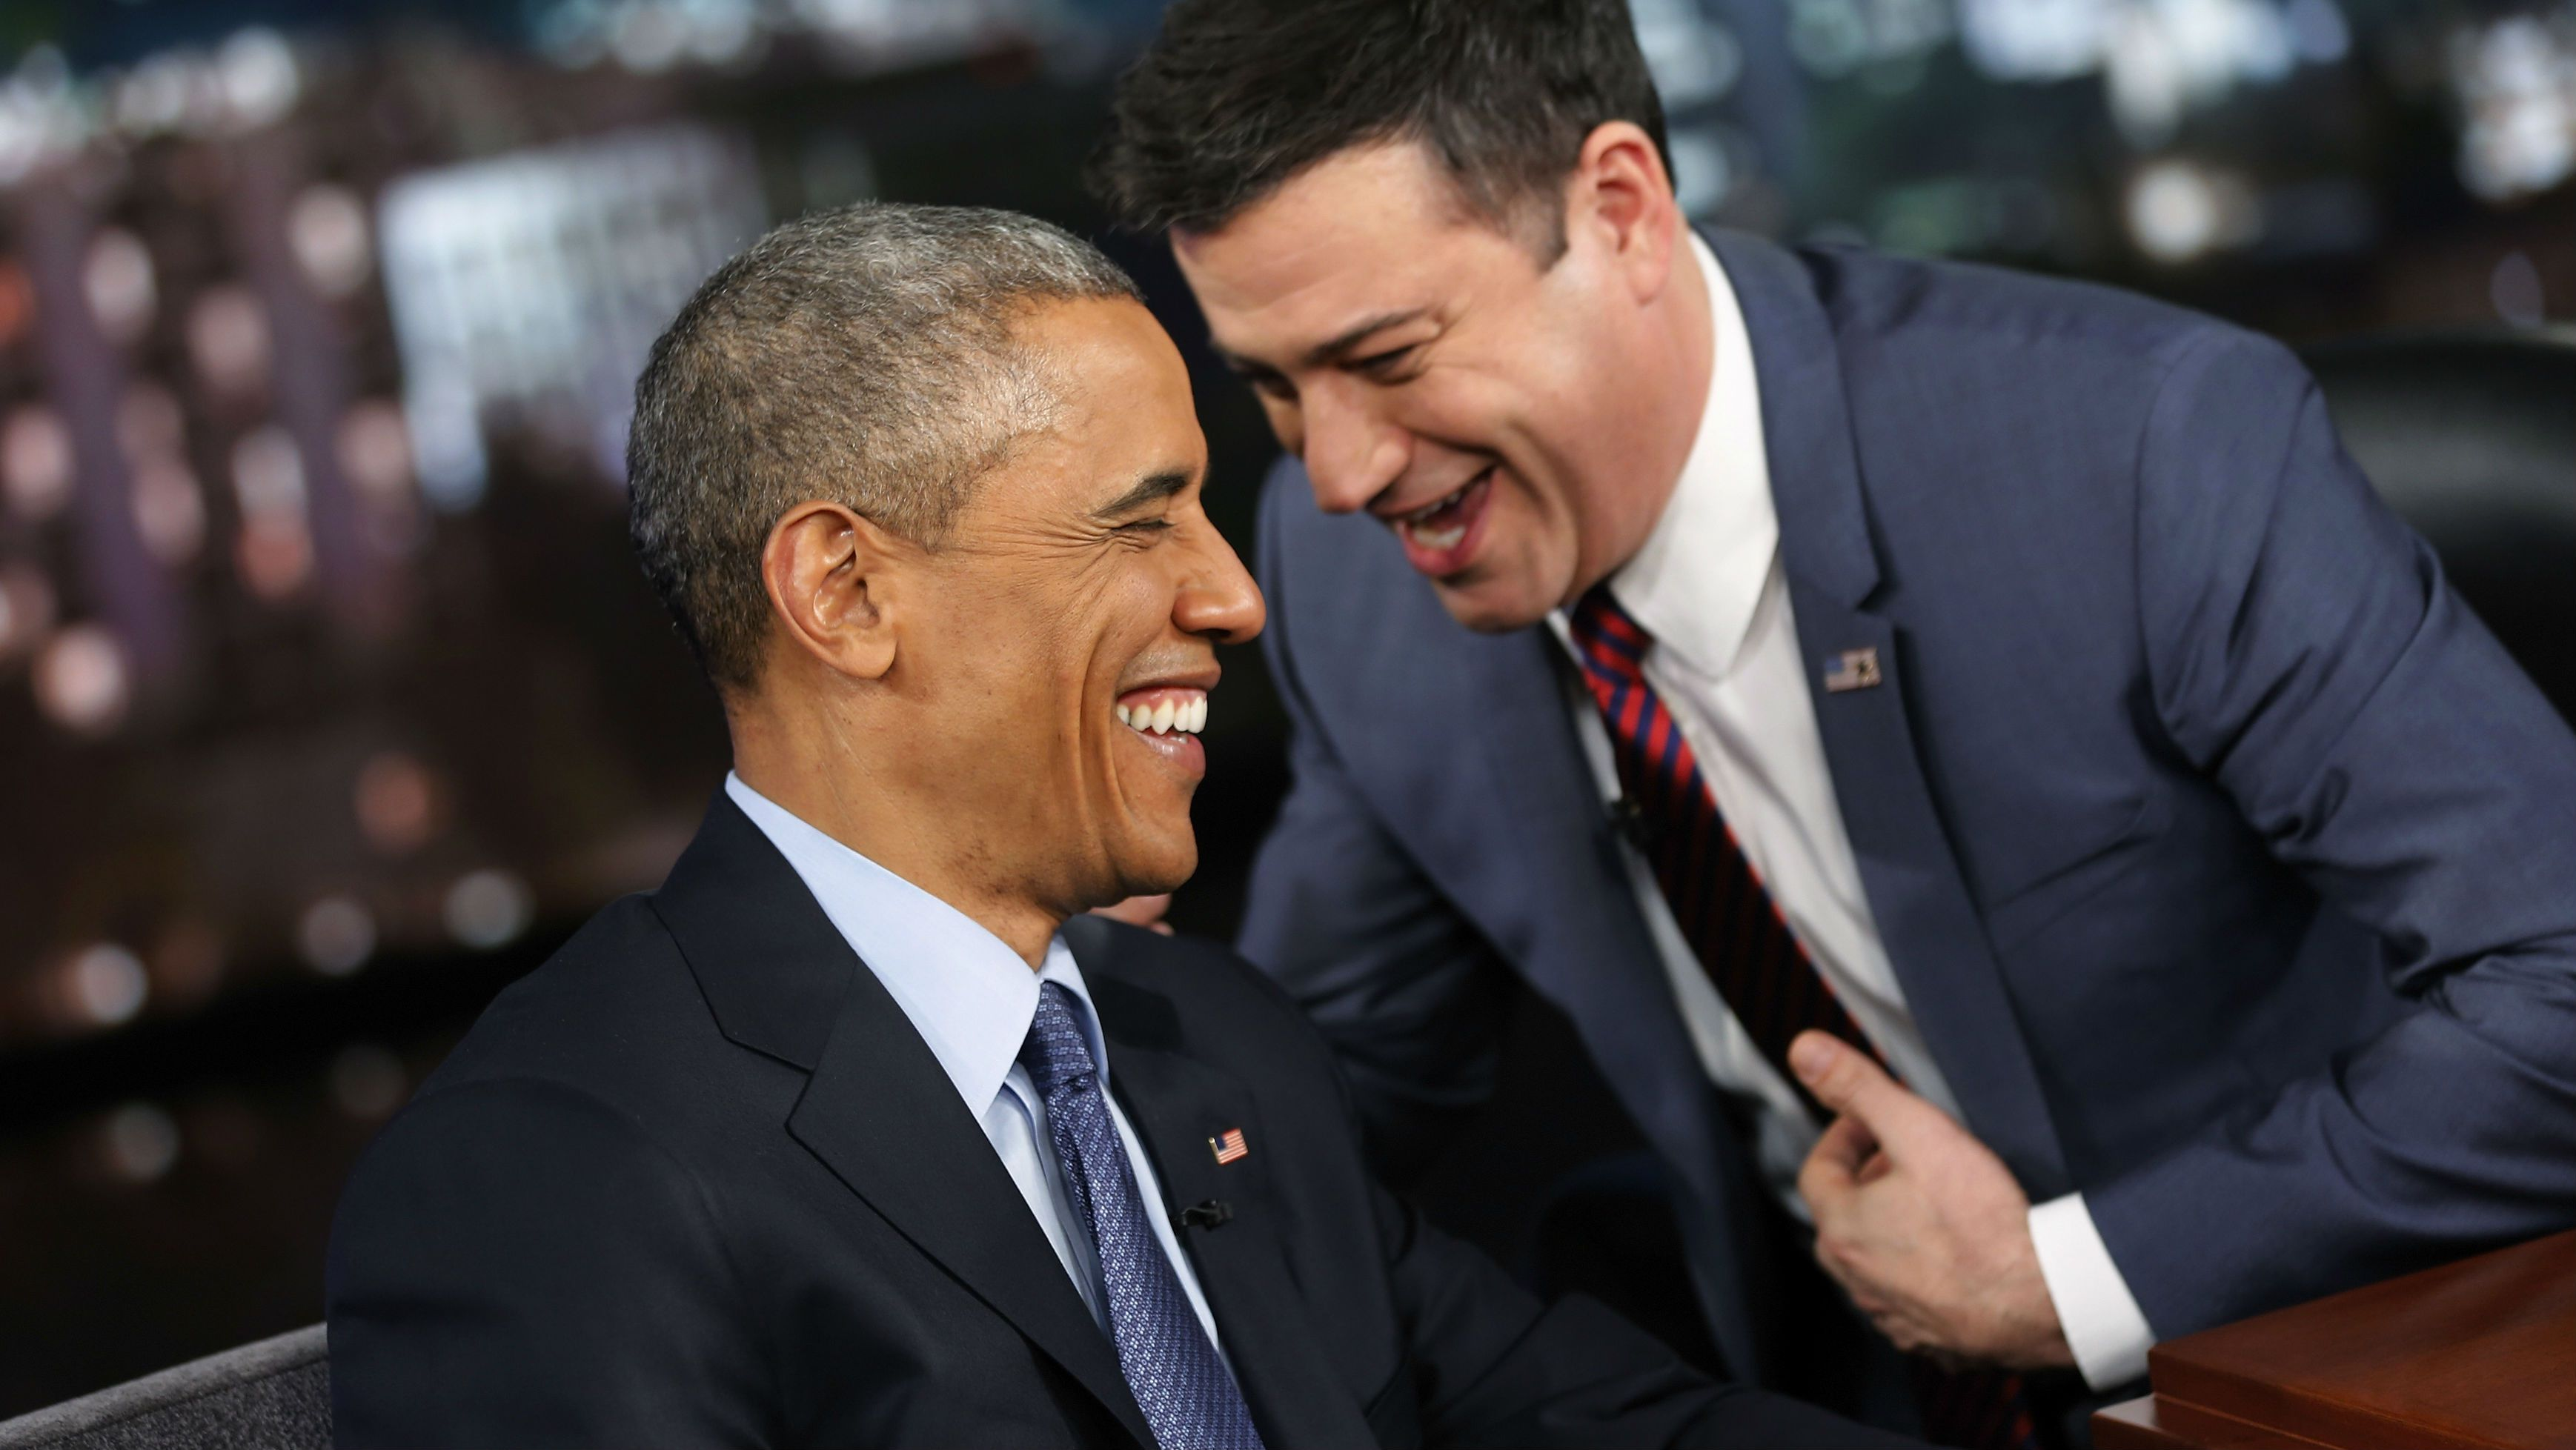 Barack Obama and Jimmy Kimmel